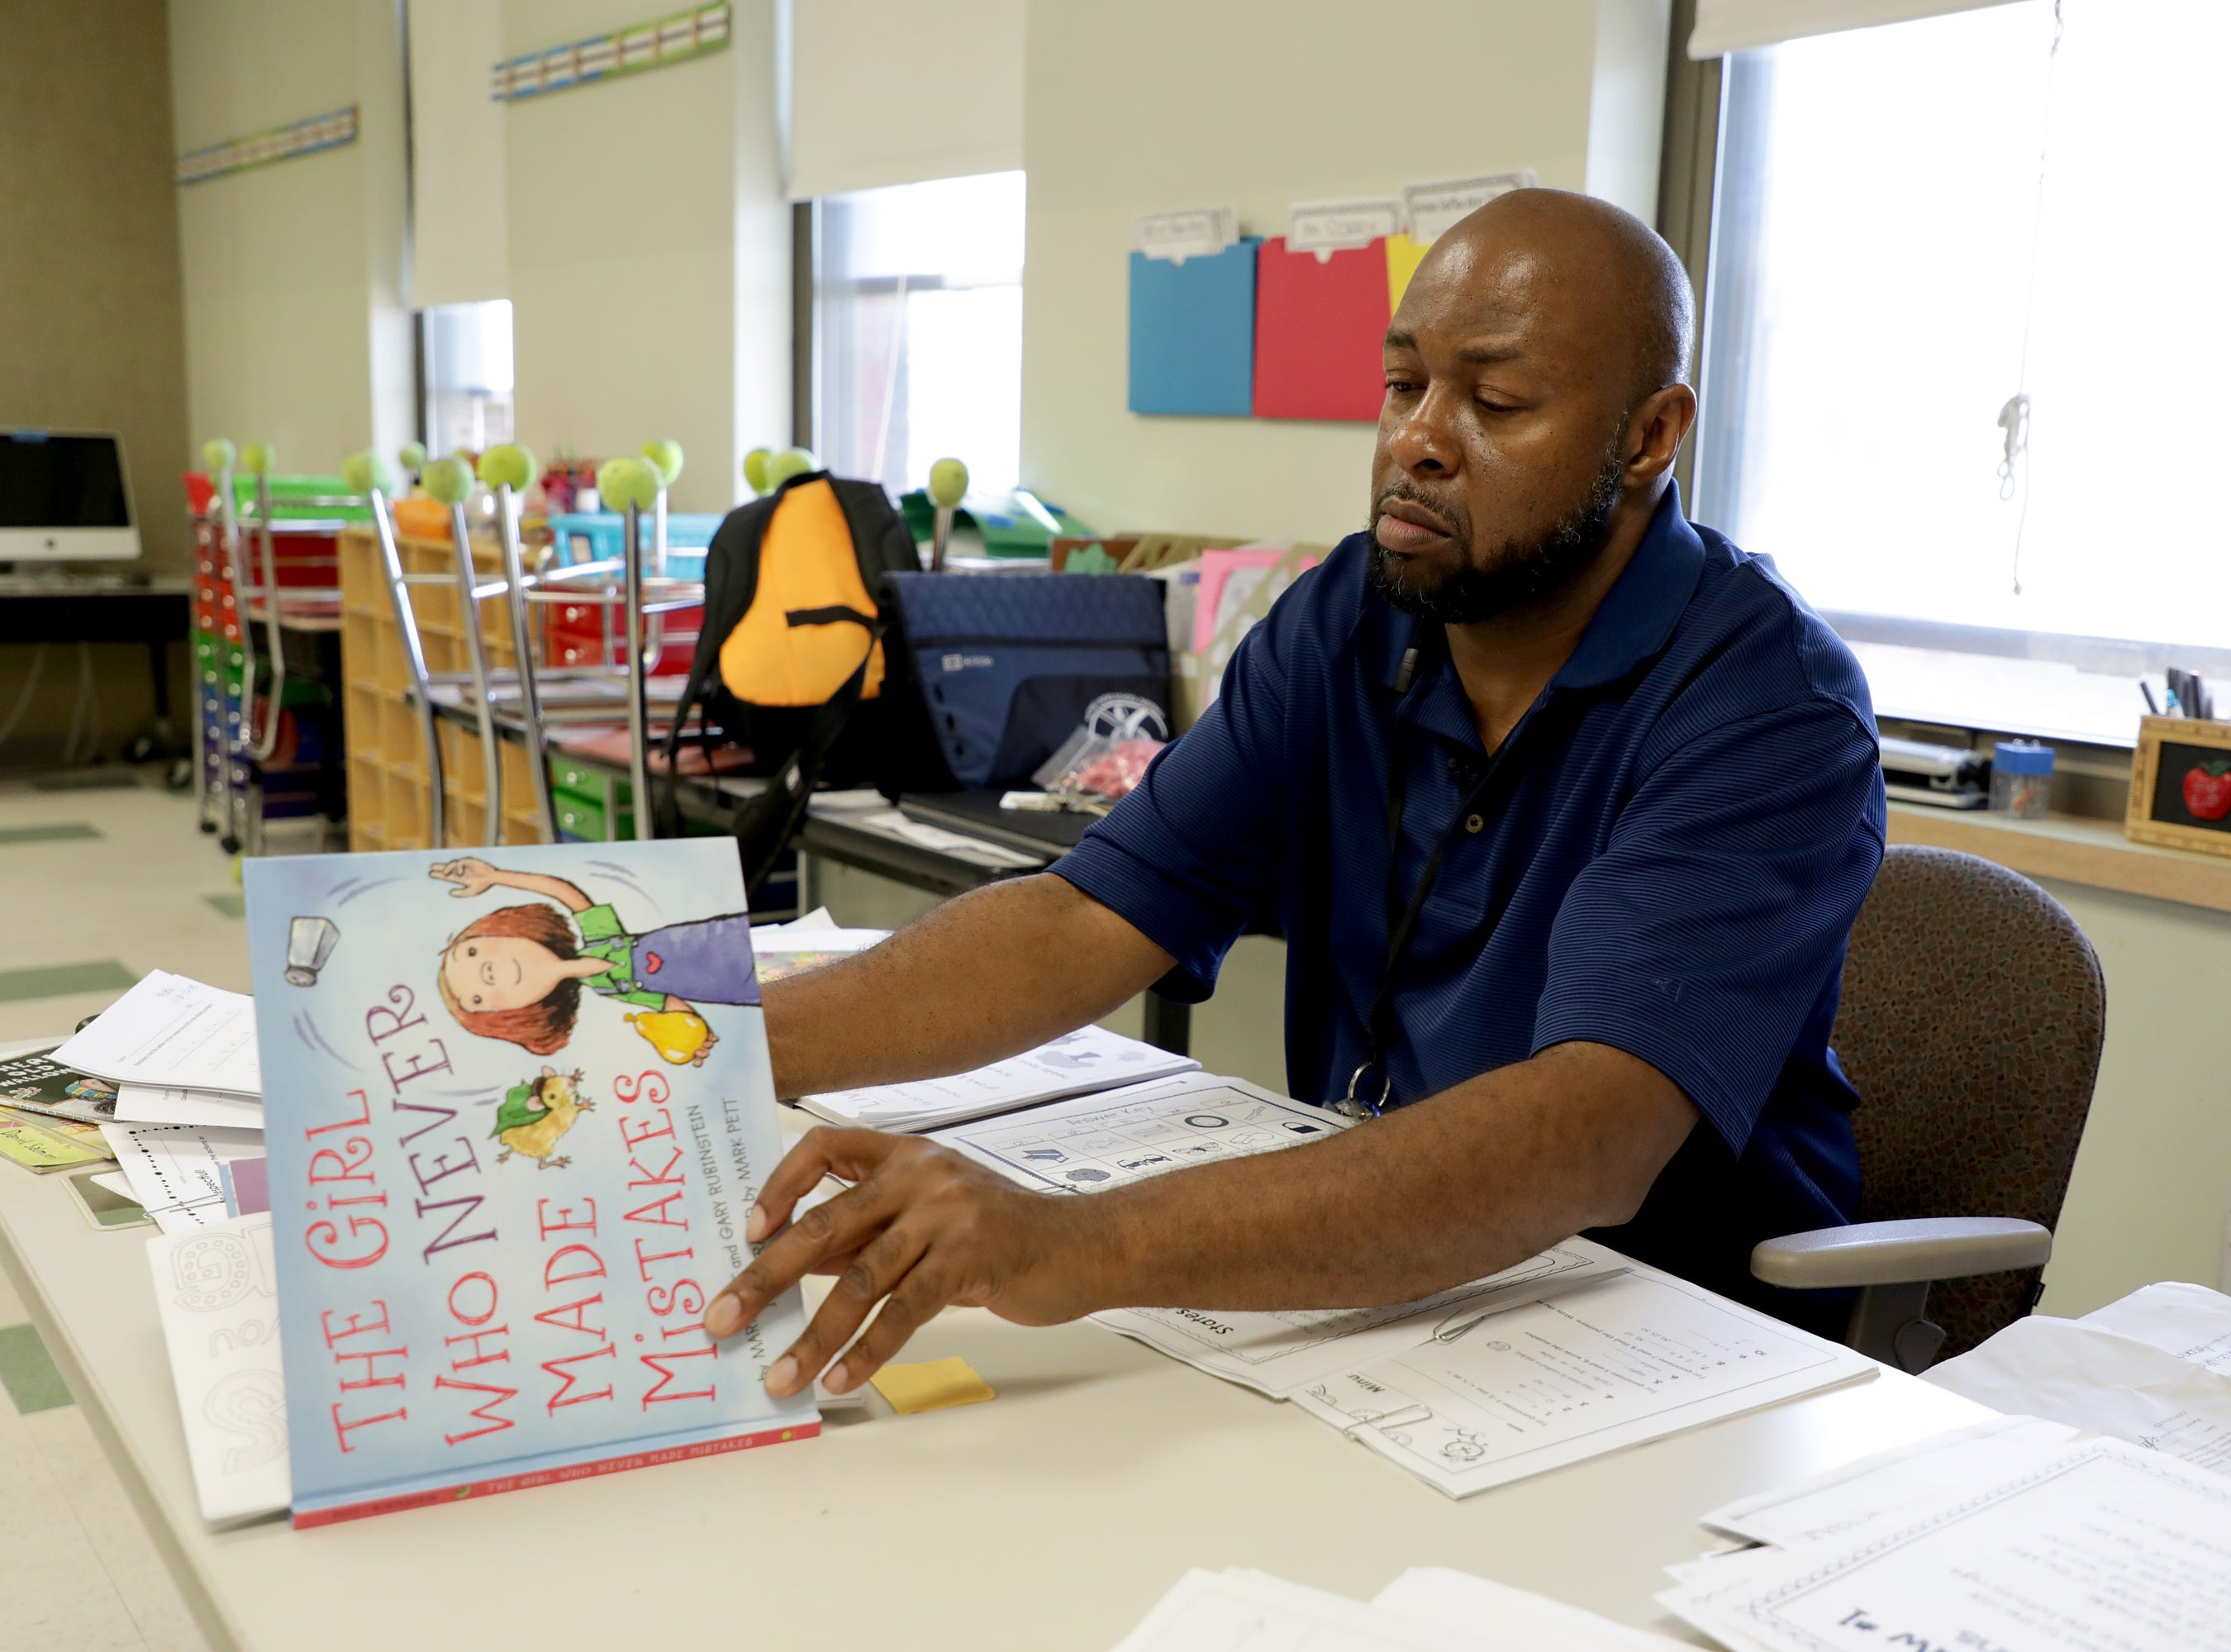 Racine WI – Edward Lawson checks the lesson plans of a second grade class before a substitute teacher arrives.